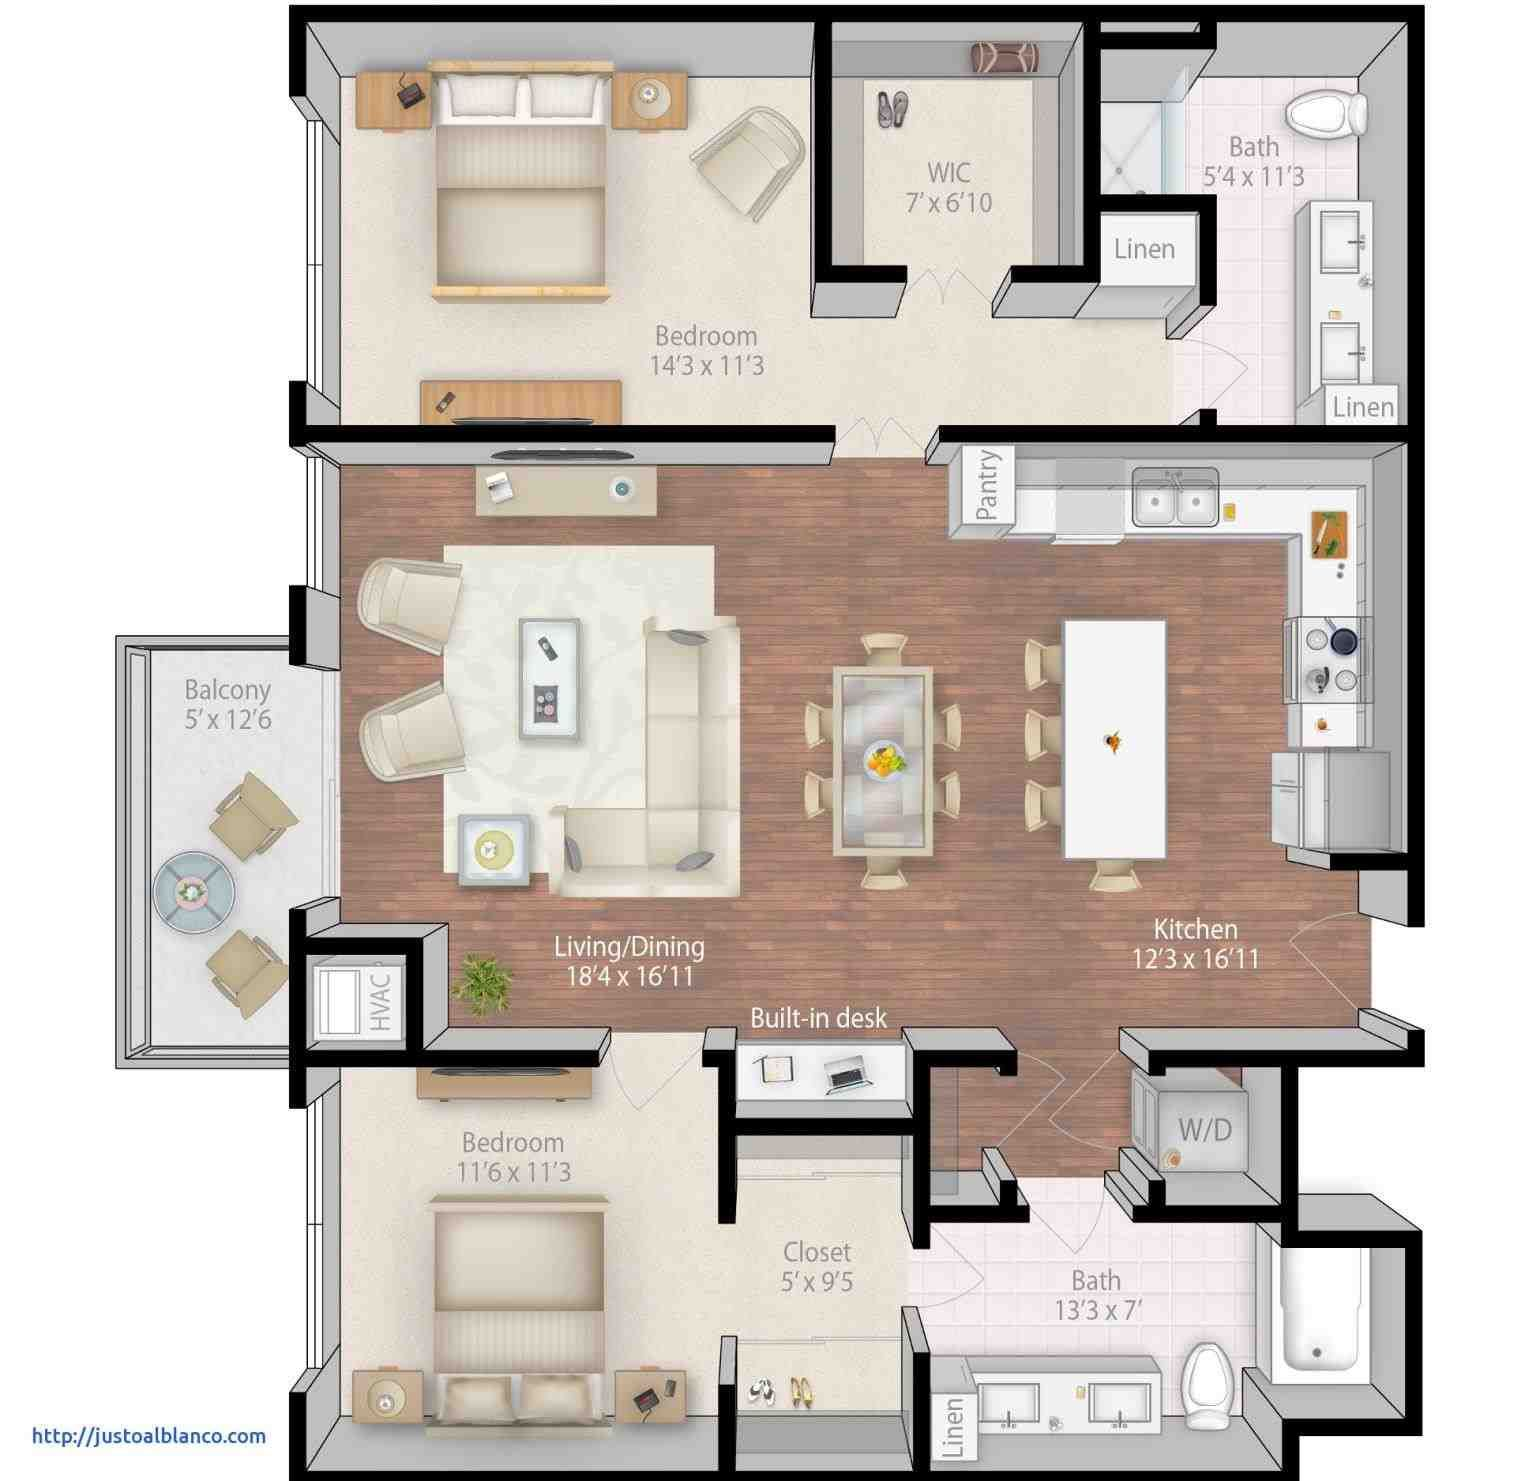 4 Bedroom Luxury Apartment Floor Plans Bedroom Studio 1 2 Apartments In Atlanta Highland Walk Roof Condo Floor Plans Apartment Floor Plans Luxurious Bedrooms